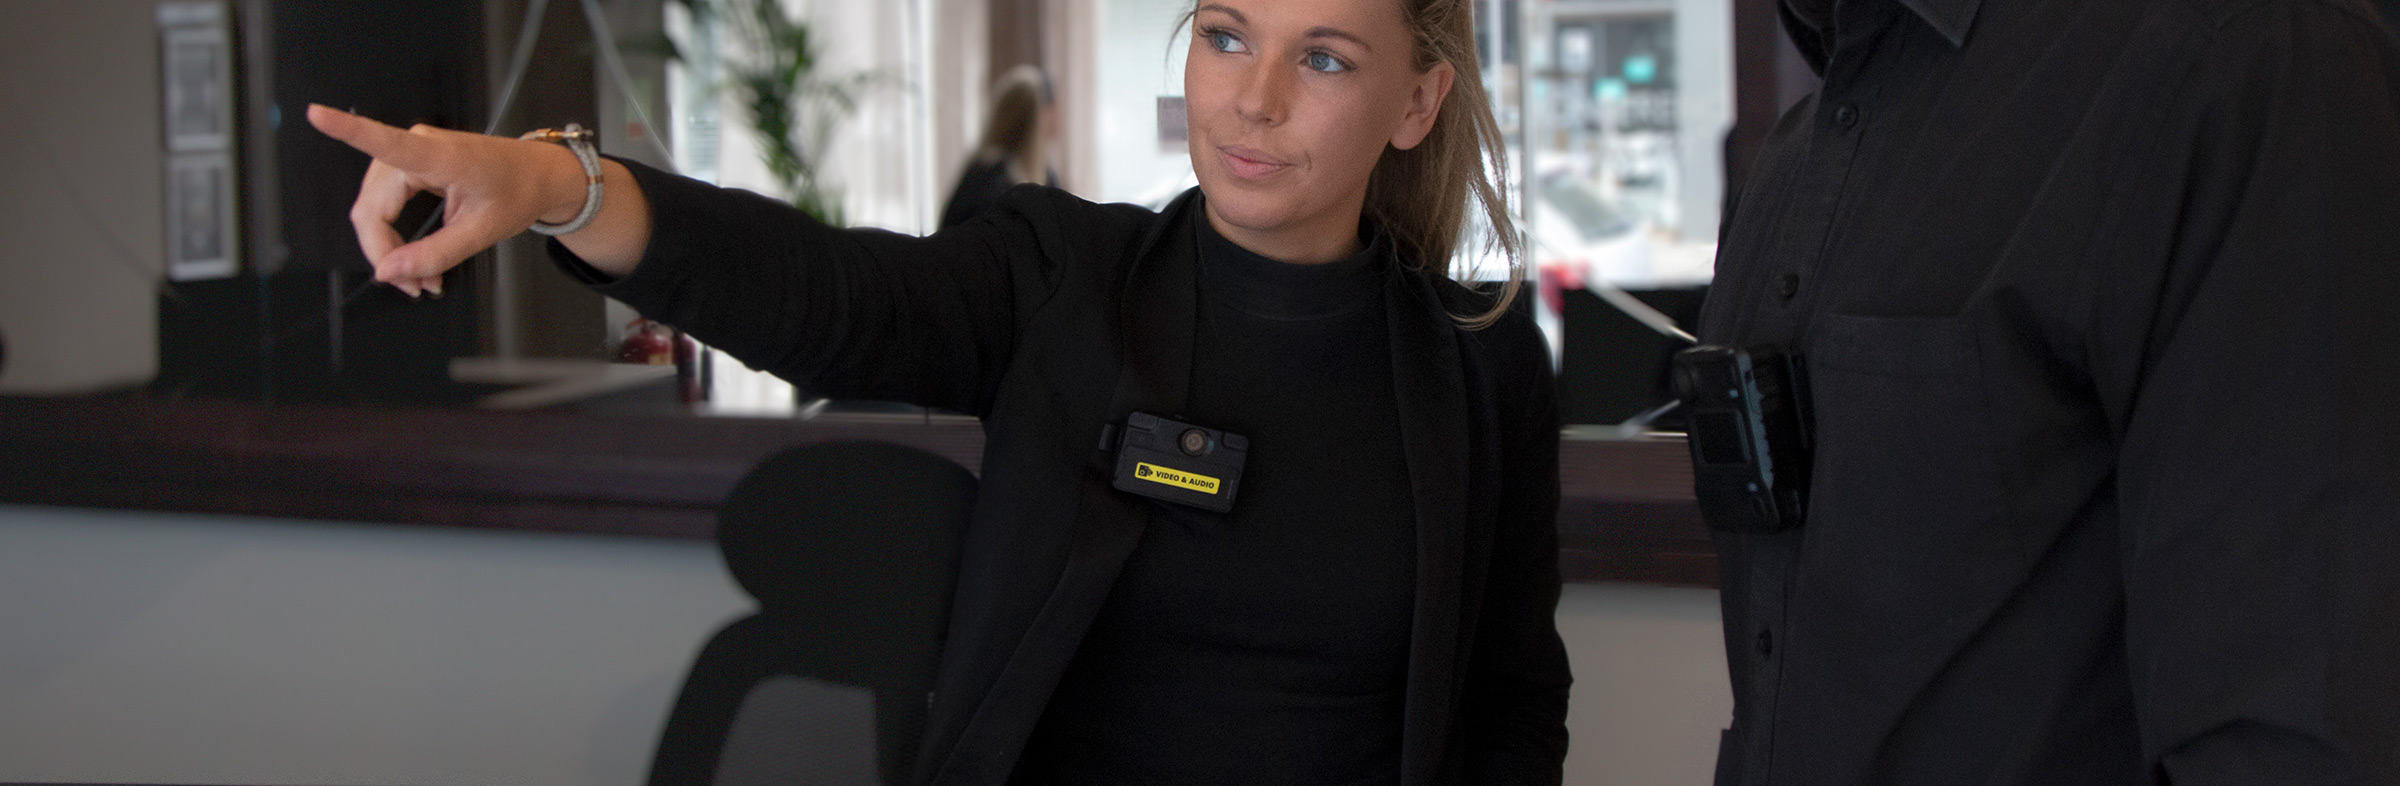 Extend Fixed Video Security Systems Using Body-Worn Cameras